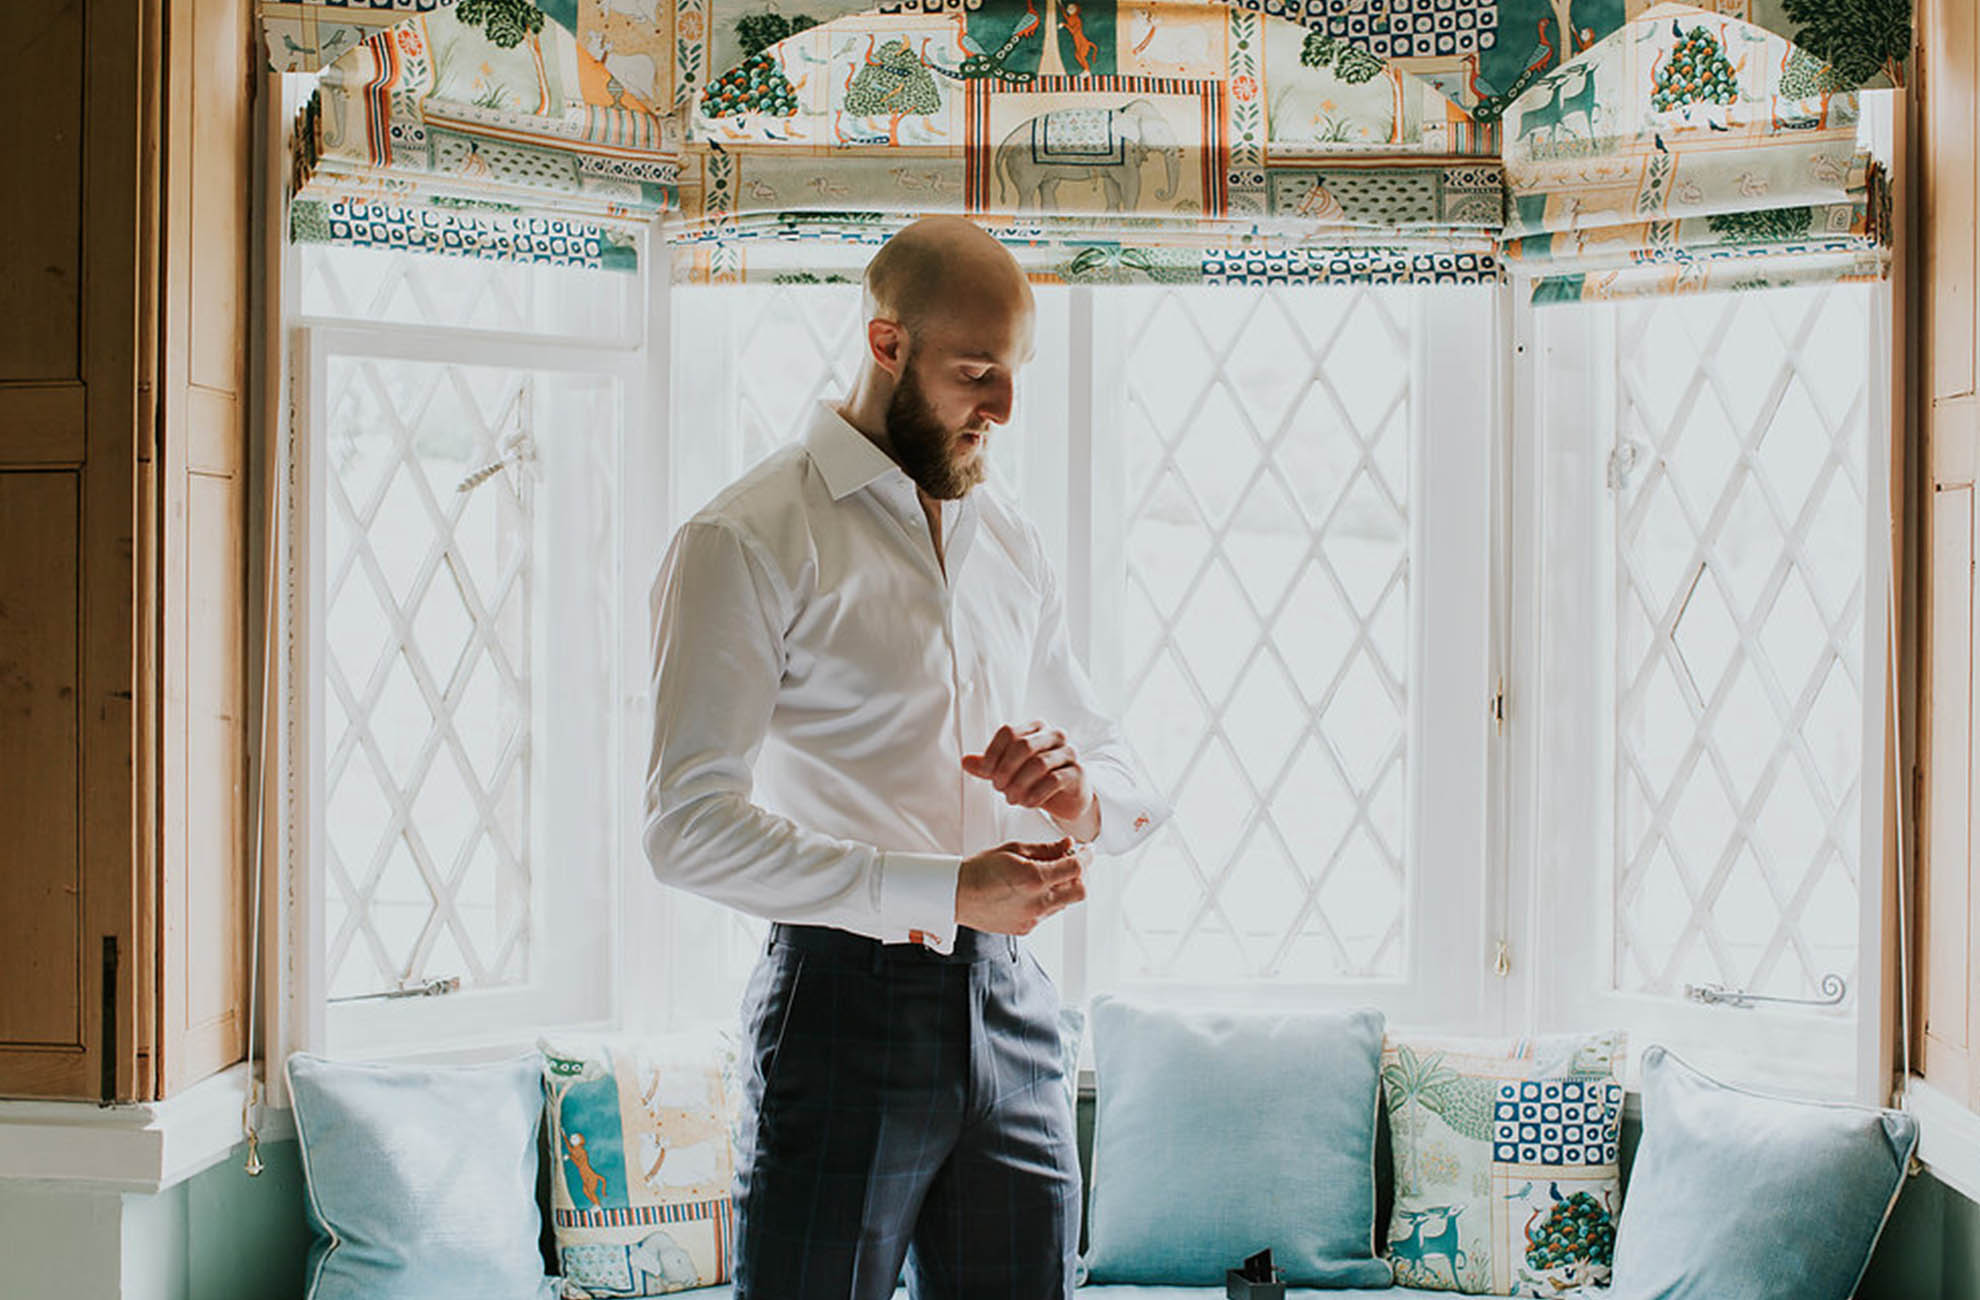 The groom prepares for his wedding ceremony in one of the cottages at Combermere Abbey